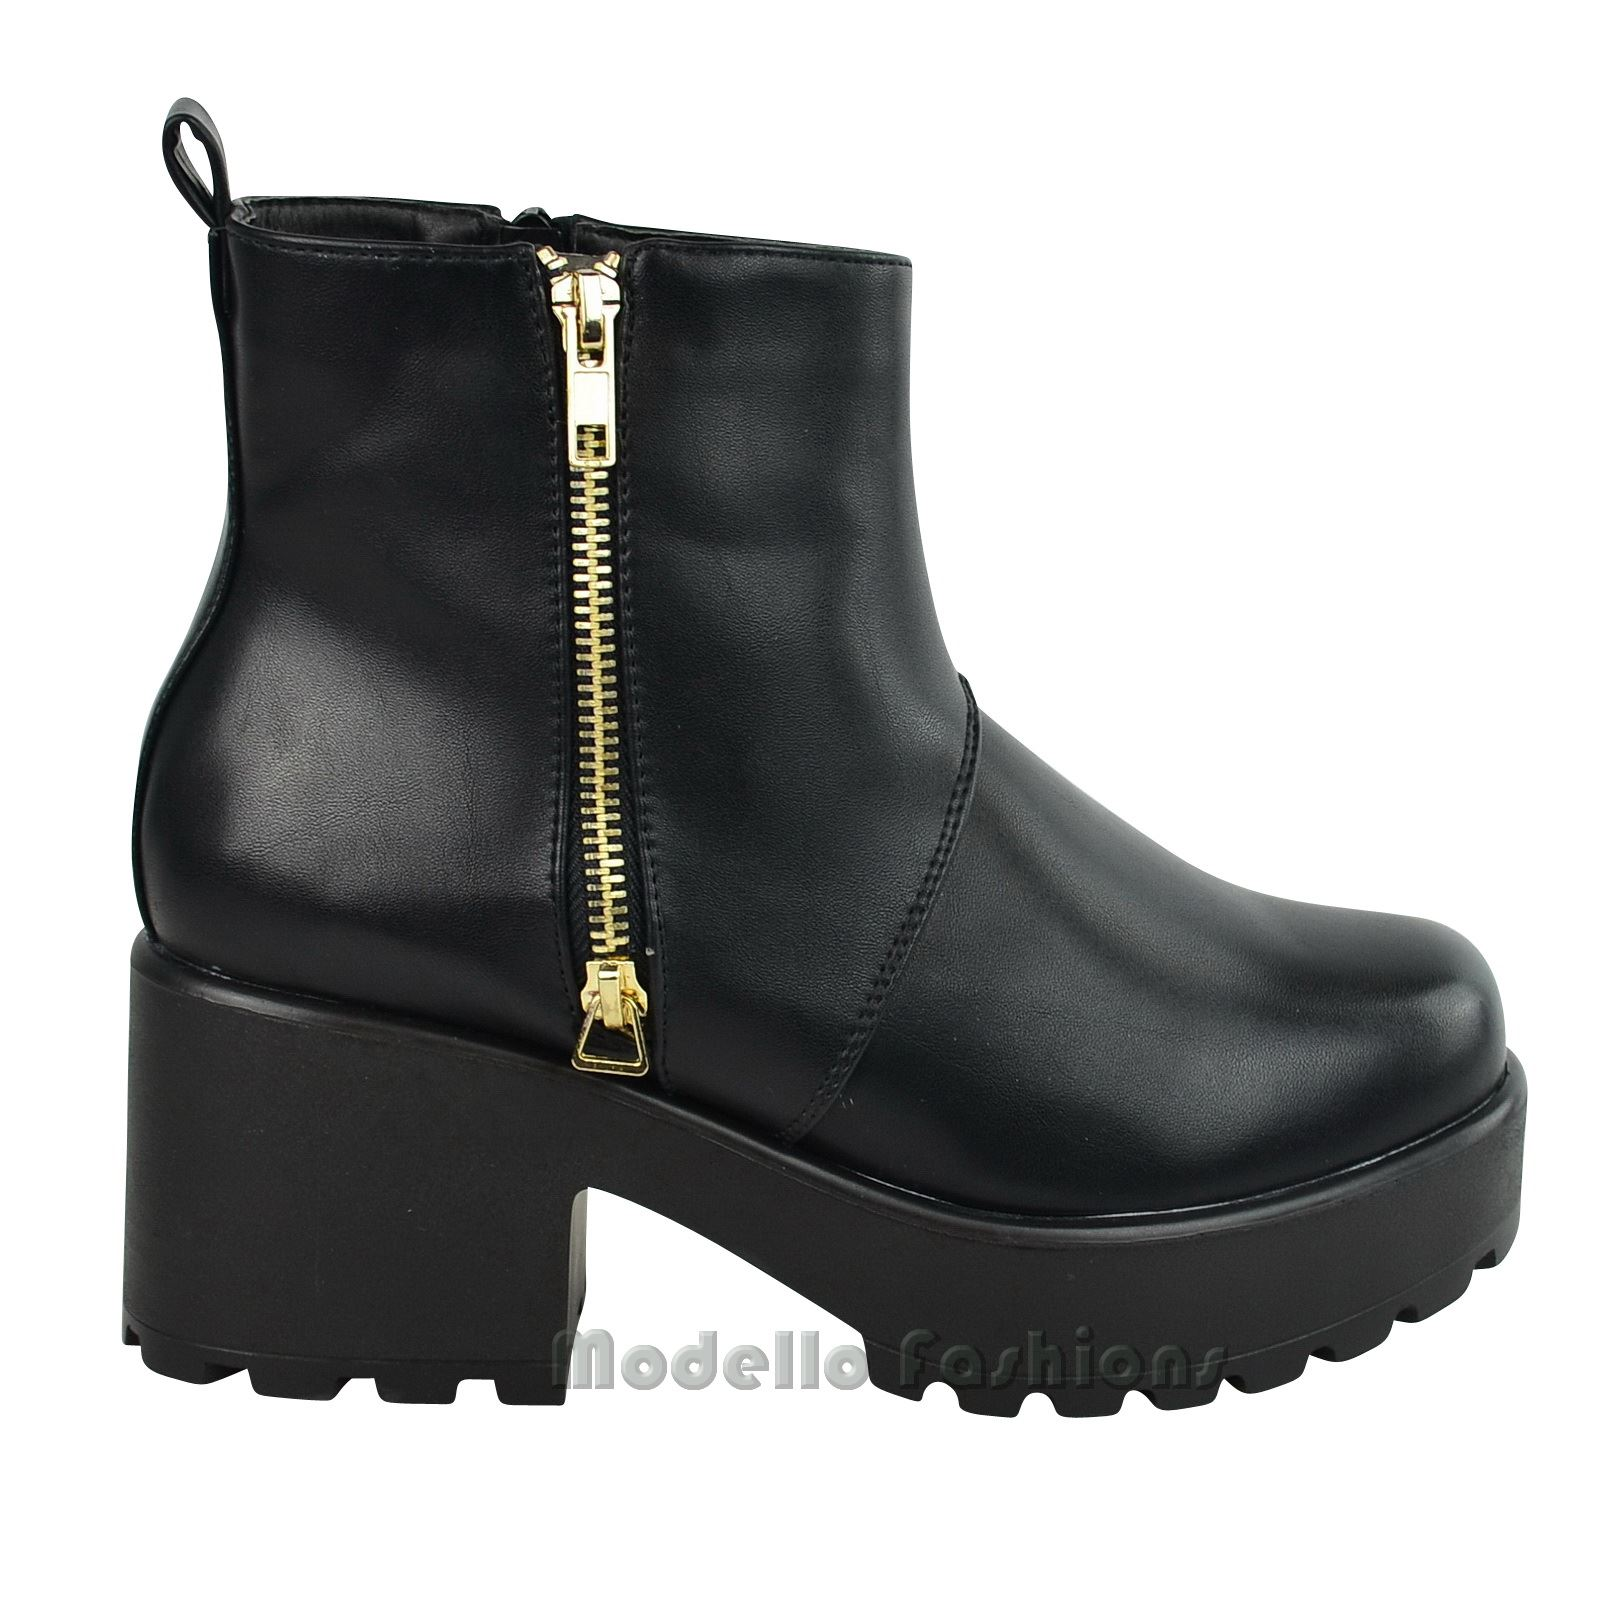 NEW WOMENS LADIES MID BLOCK HEEL GOLD ZIP PLATFORM CHUNKY ANKLE BOOTS SHOES SIZE